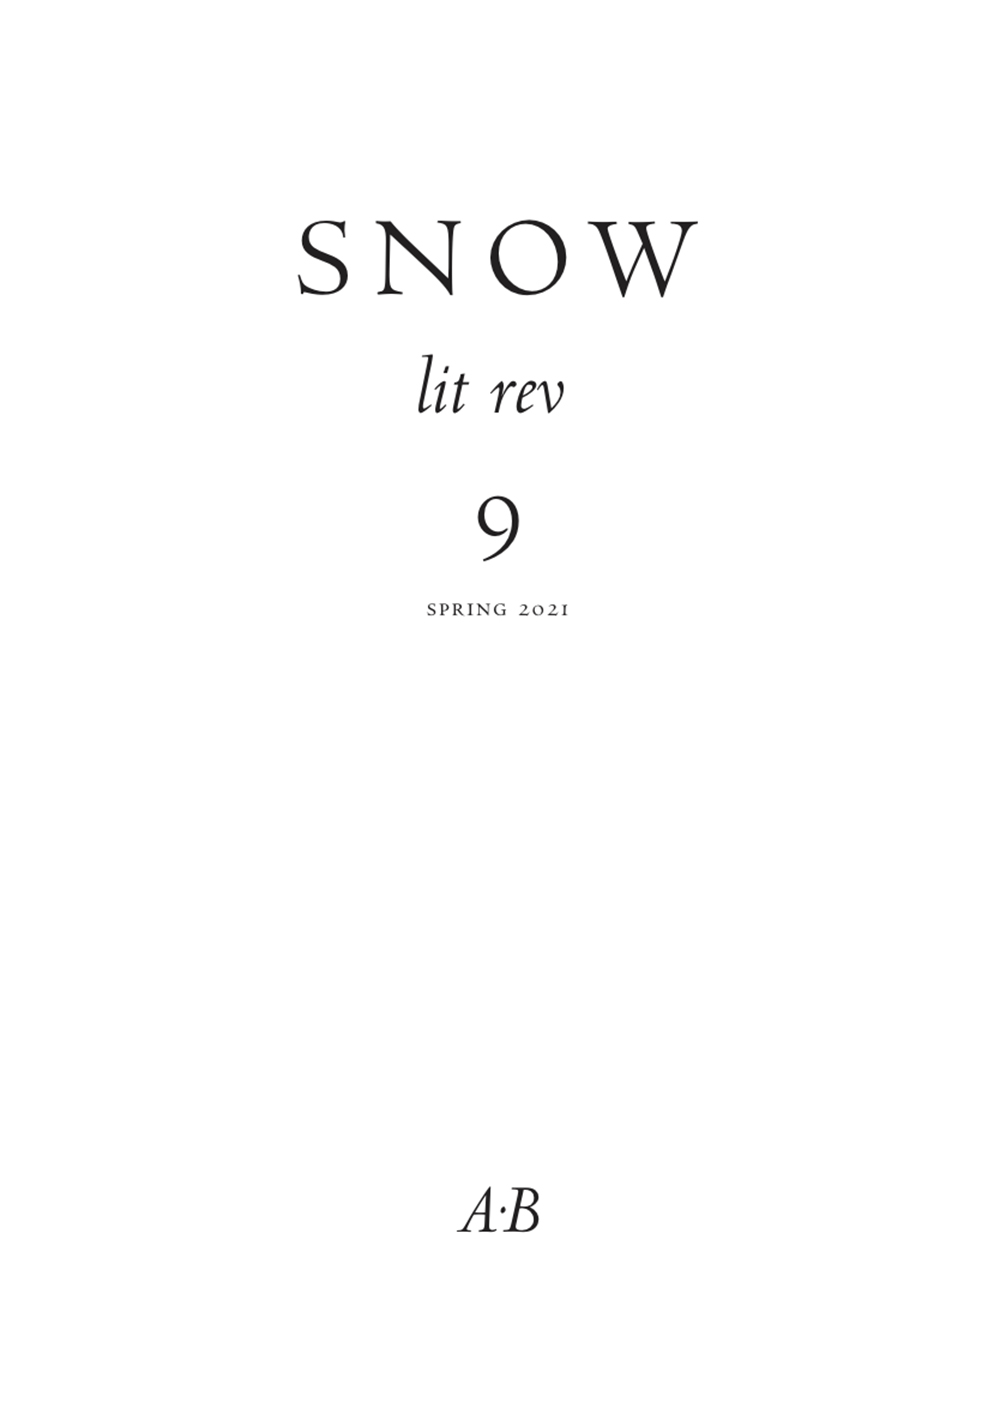 Snow lit rev, no. 9